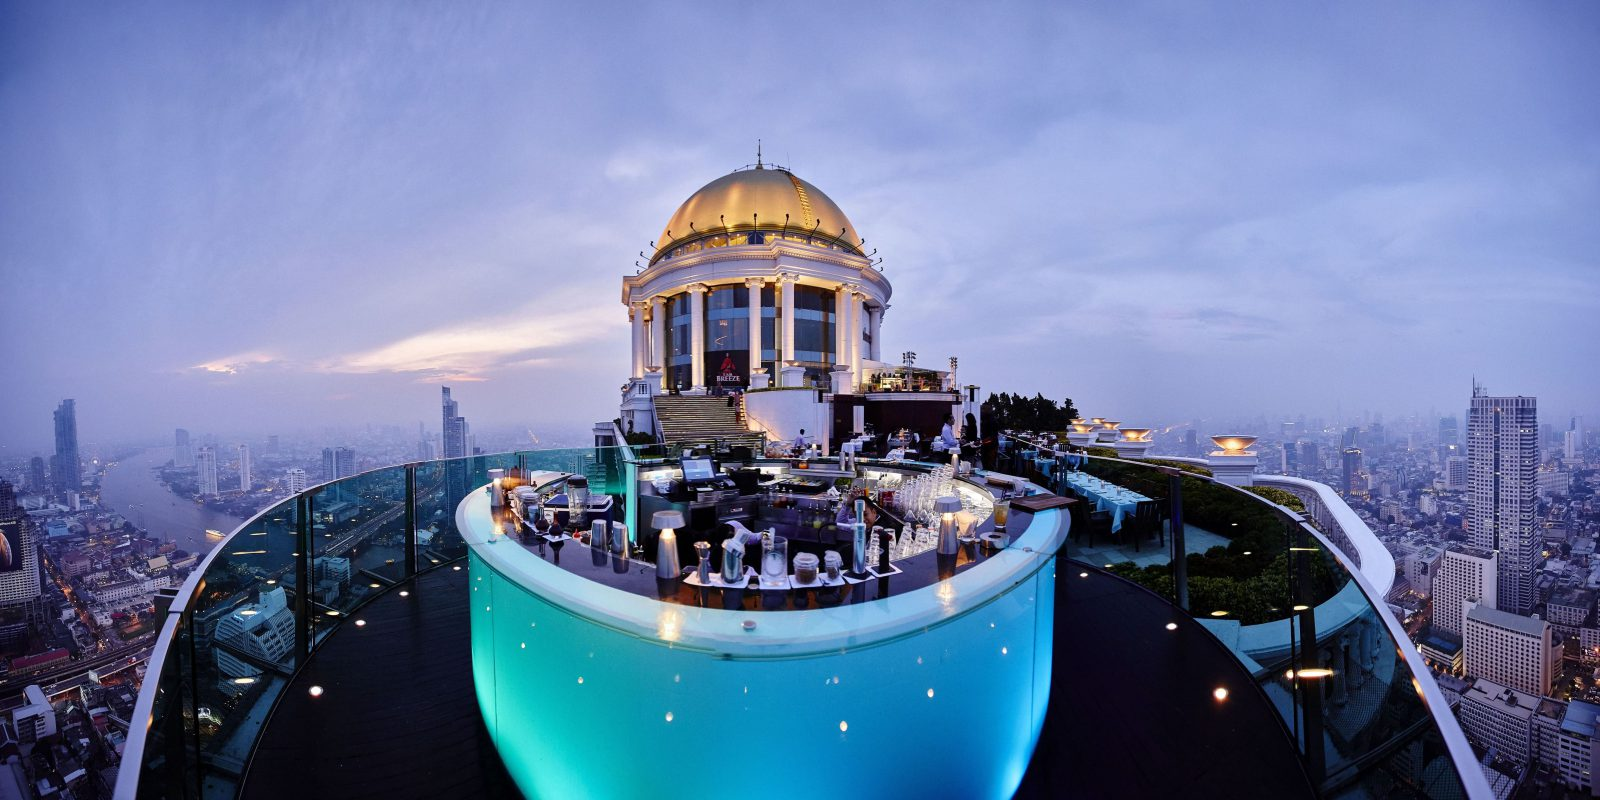 Sky Bar Building and Balcony Panorama